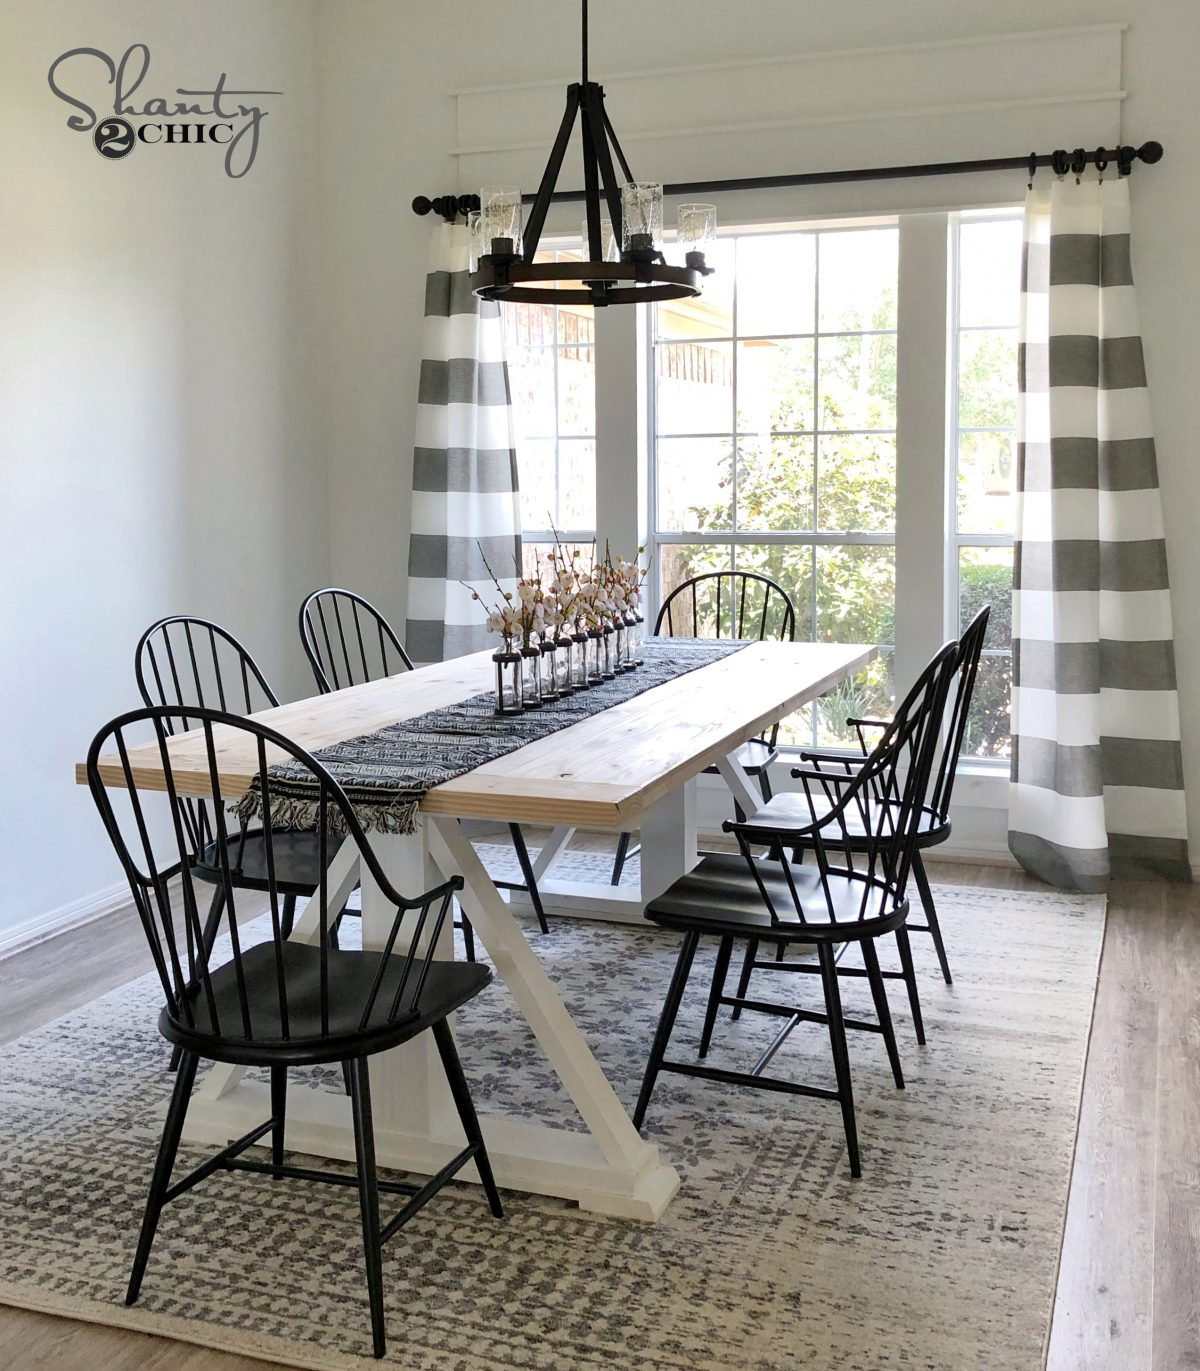 Fullsize Of Farmhouse Dining Table